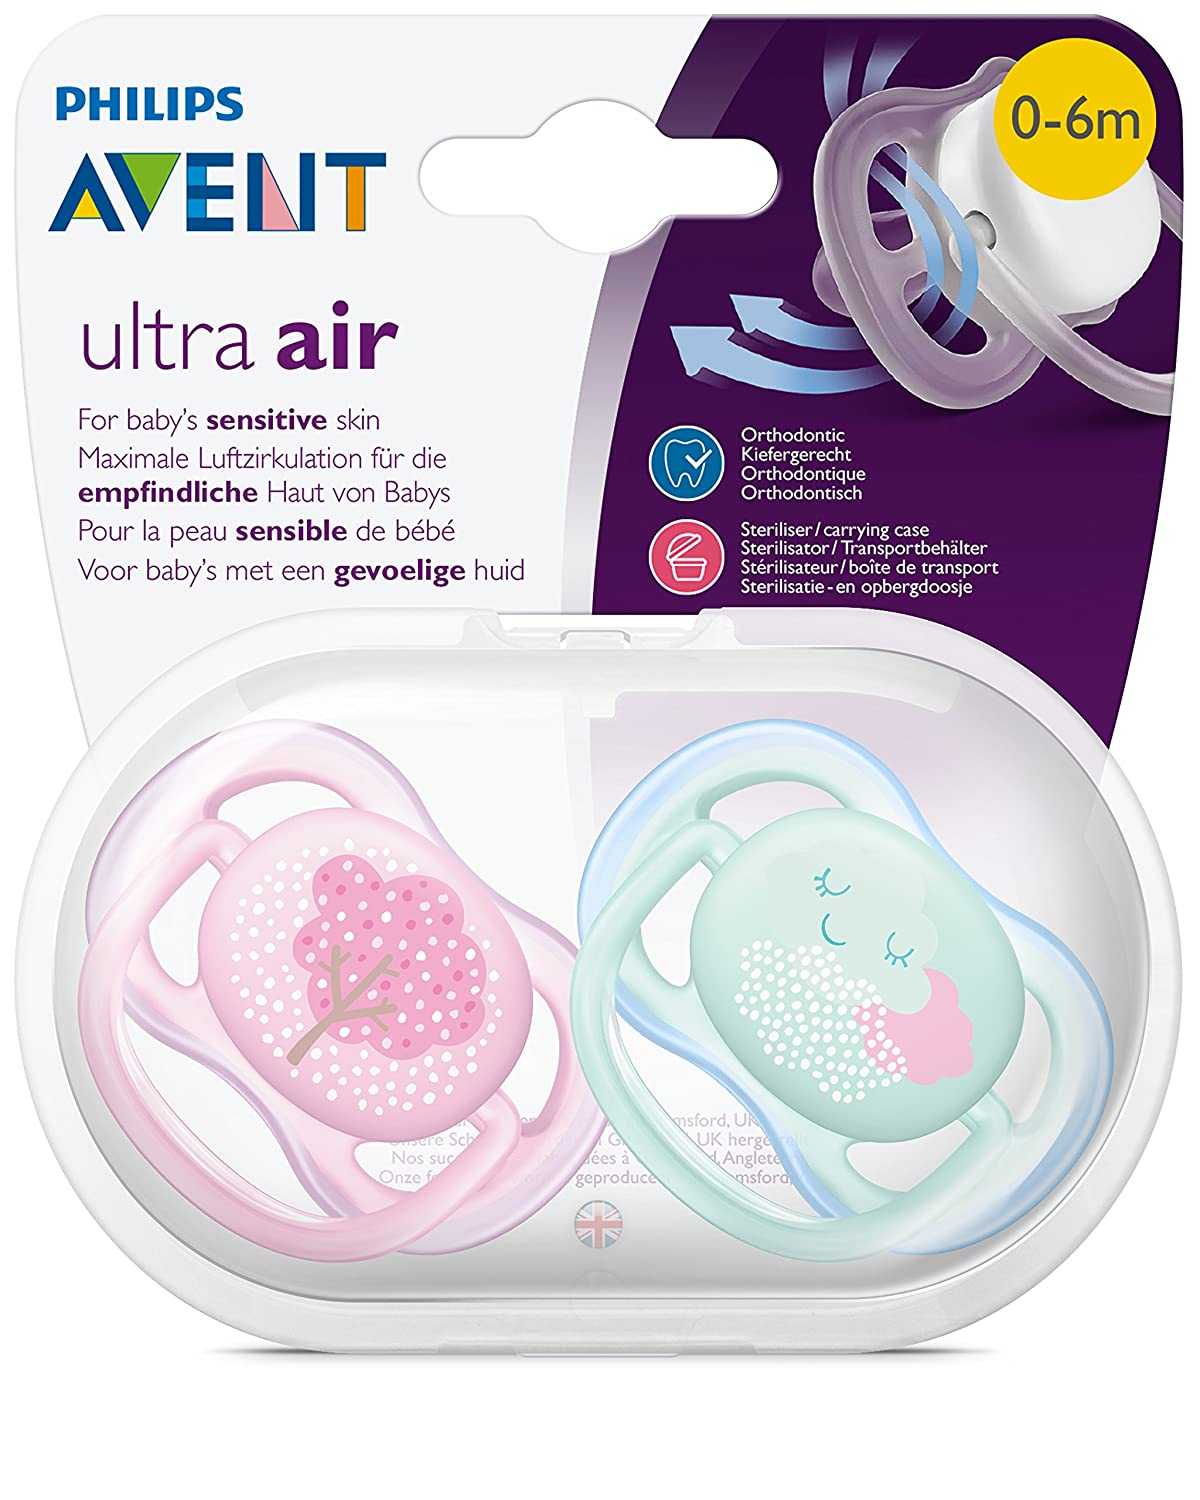 Philips Avent SCF343/20 - Pack con 2 chupetes Ultra Air decorados, de 0 A 6 meses, niña